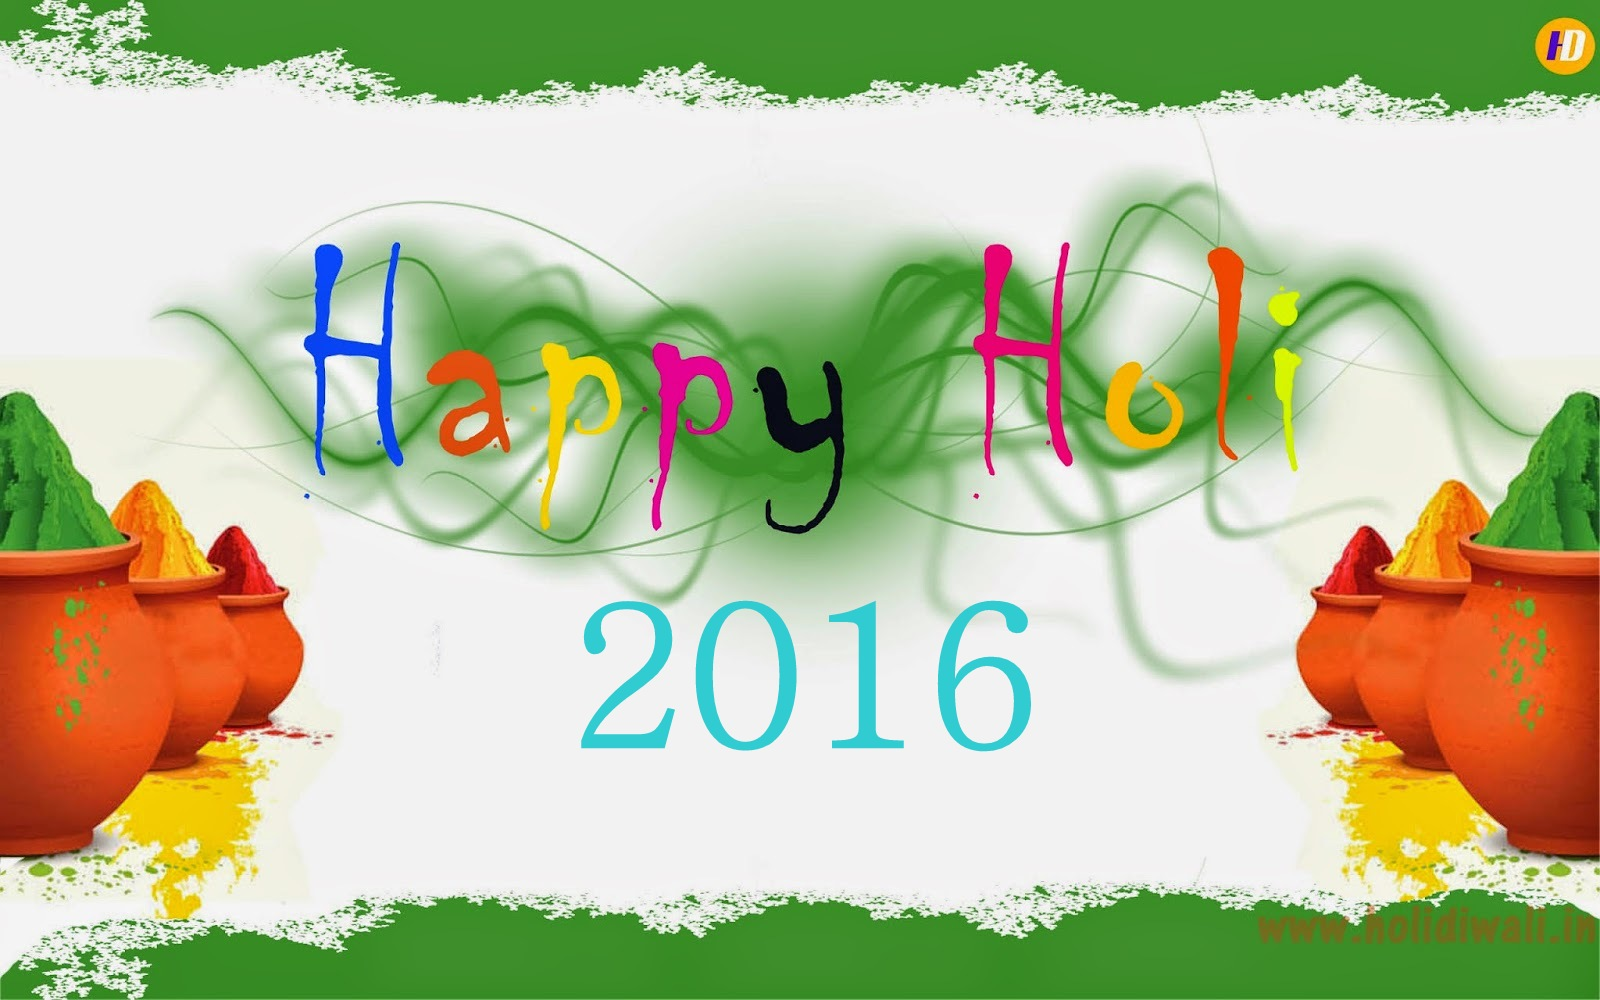 new }} happy holi 2018 images,greetings,wallpapers and more